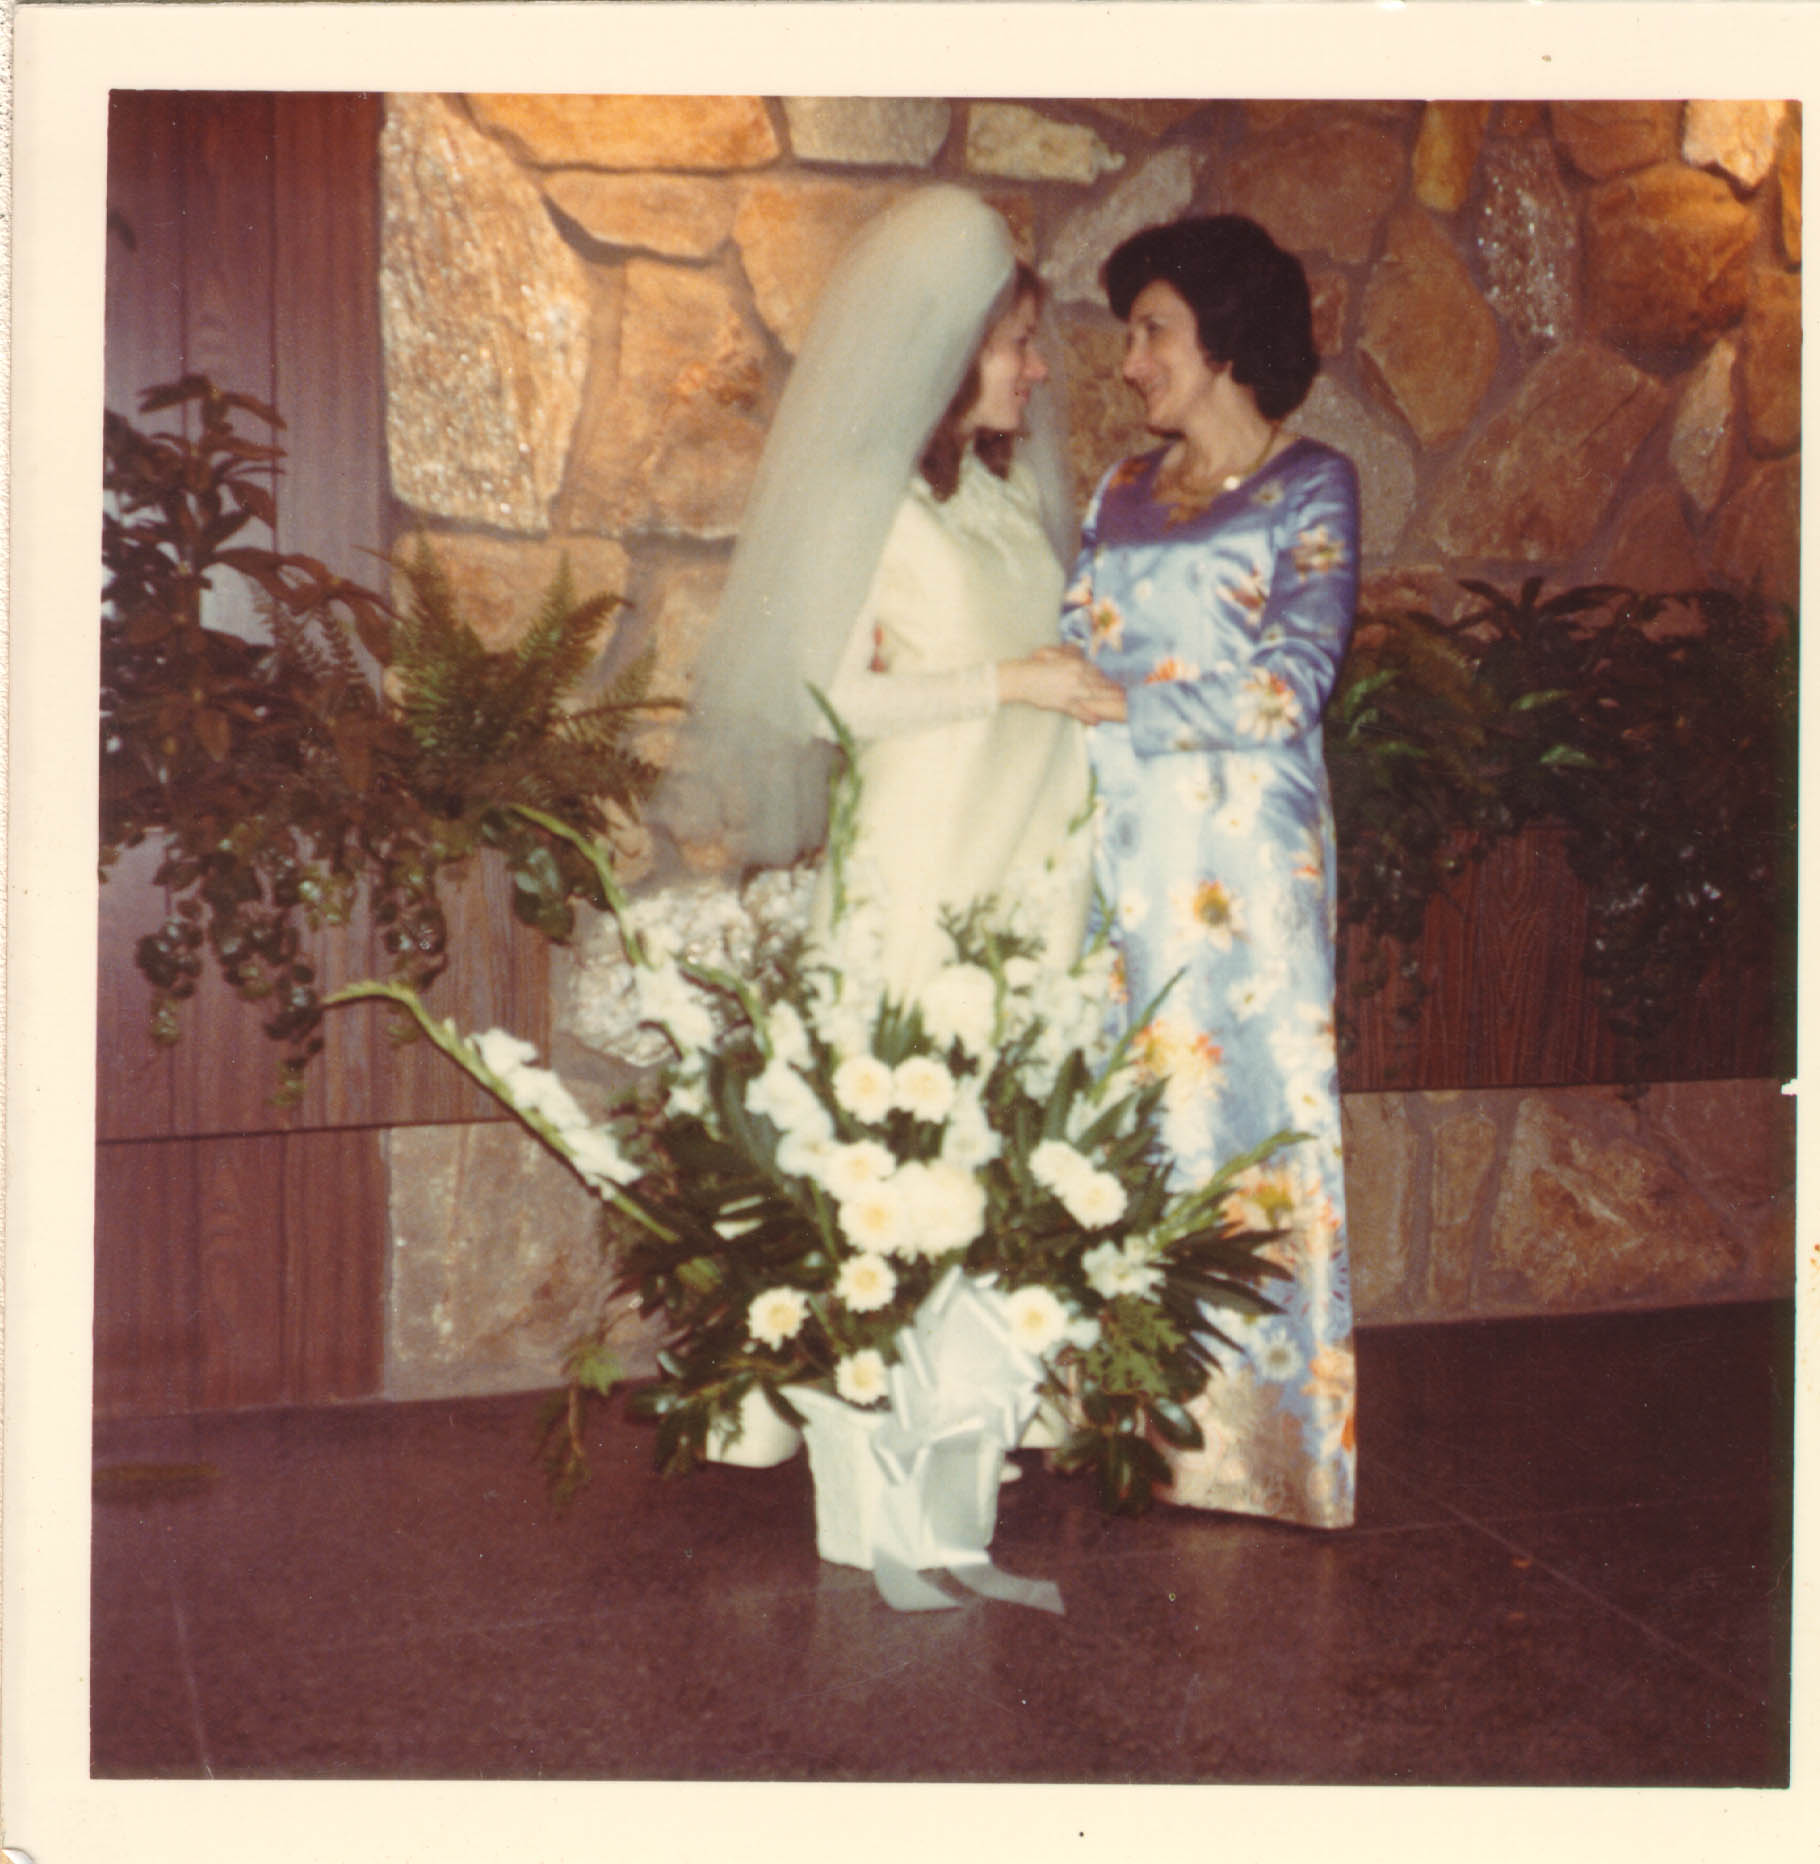 Blanka (right) with her daughter, Shelly, after Shelly's wedding. New York, 1974.